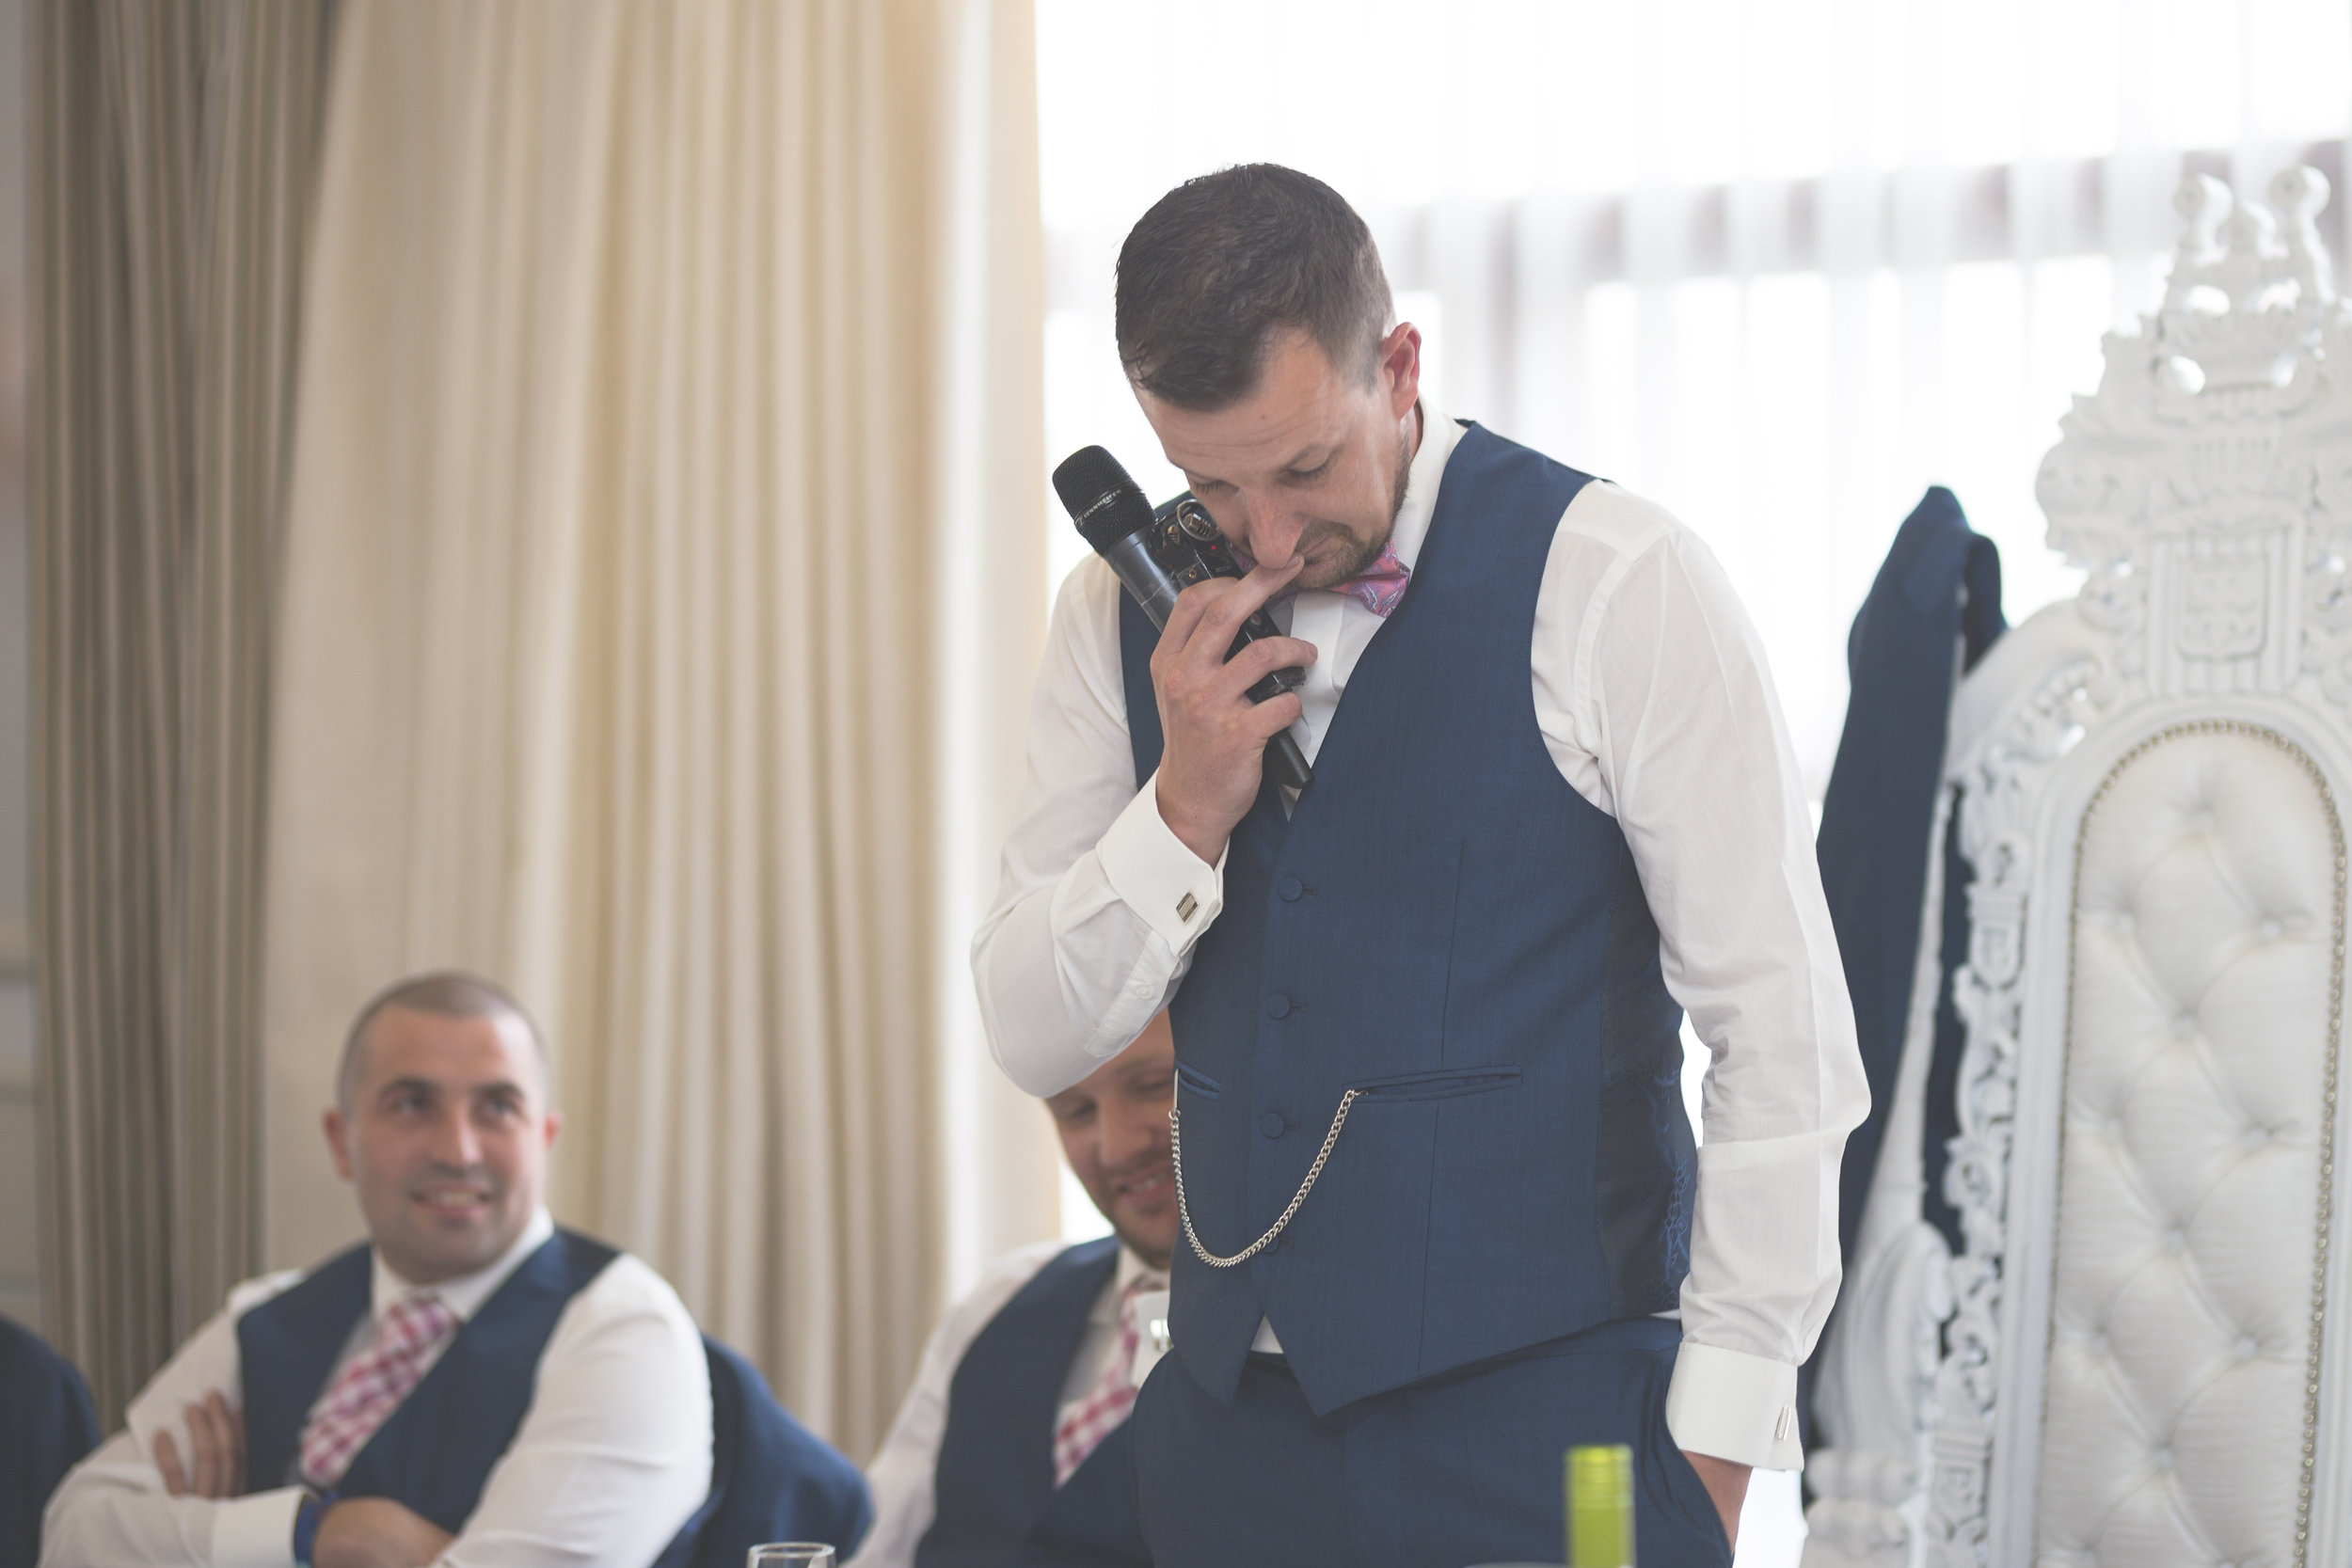 Antoinette & Stephen - Speeches | Brian McEwan Photography | Wedding Photographer Northern Ireland 59.jpg